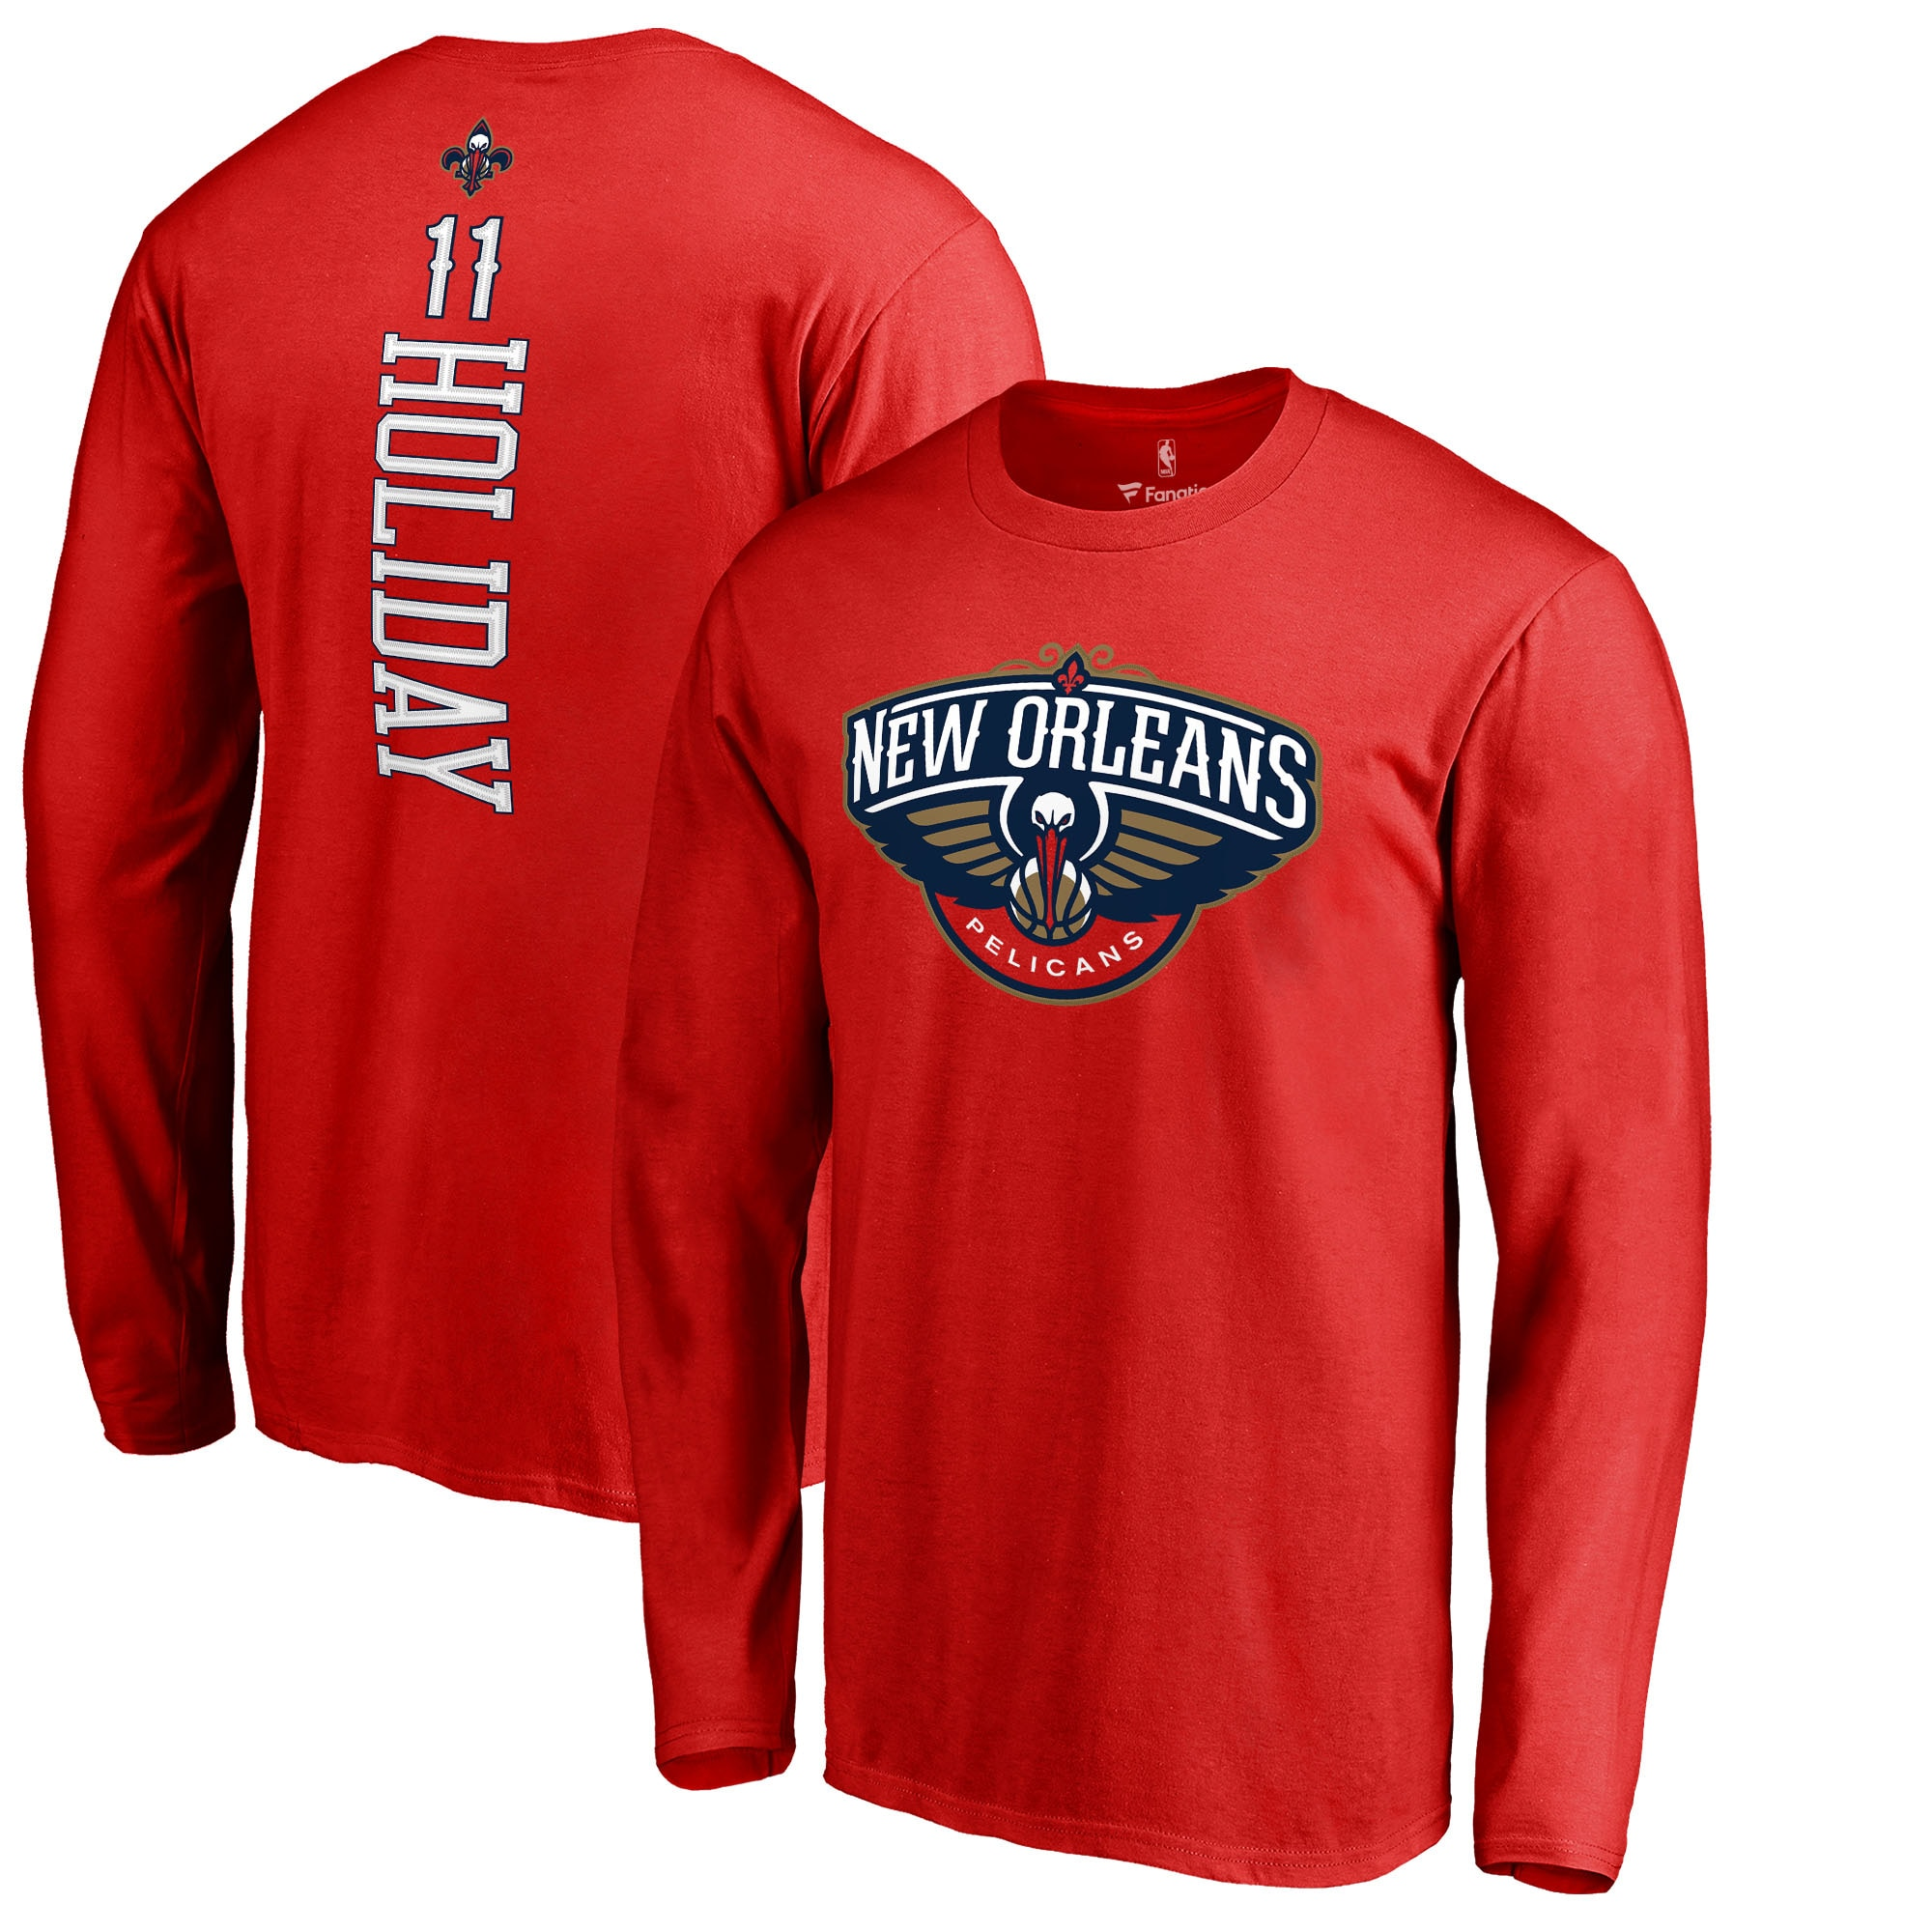 Jrue Holiday New Orleans Pelicans Fanatics Branded Long Sleeve Backer Name and Number T-Shirt - Red